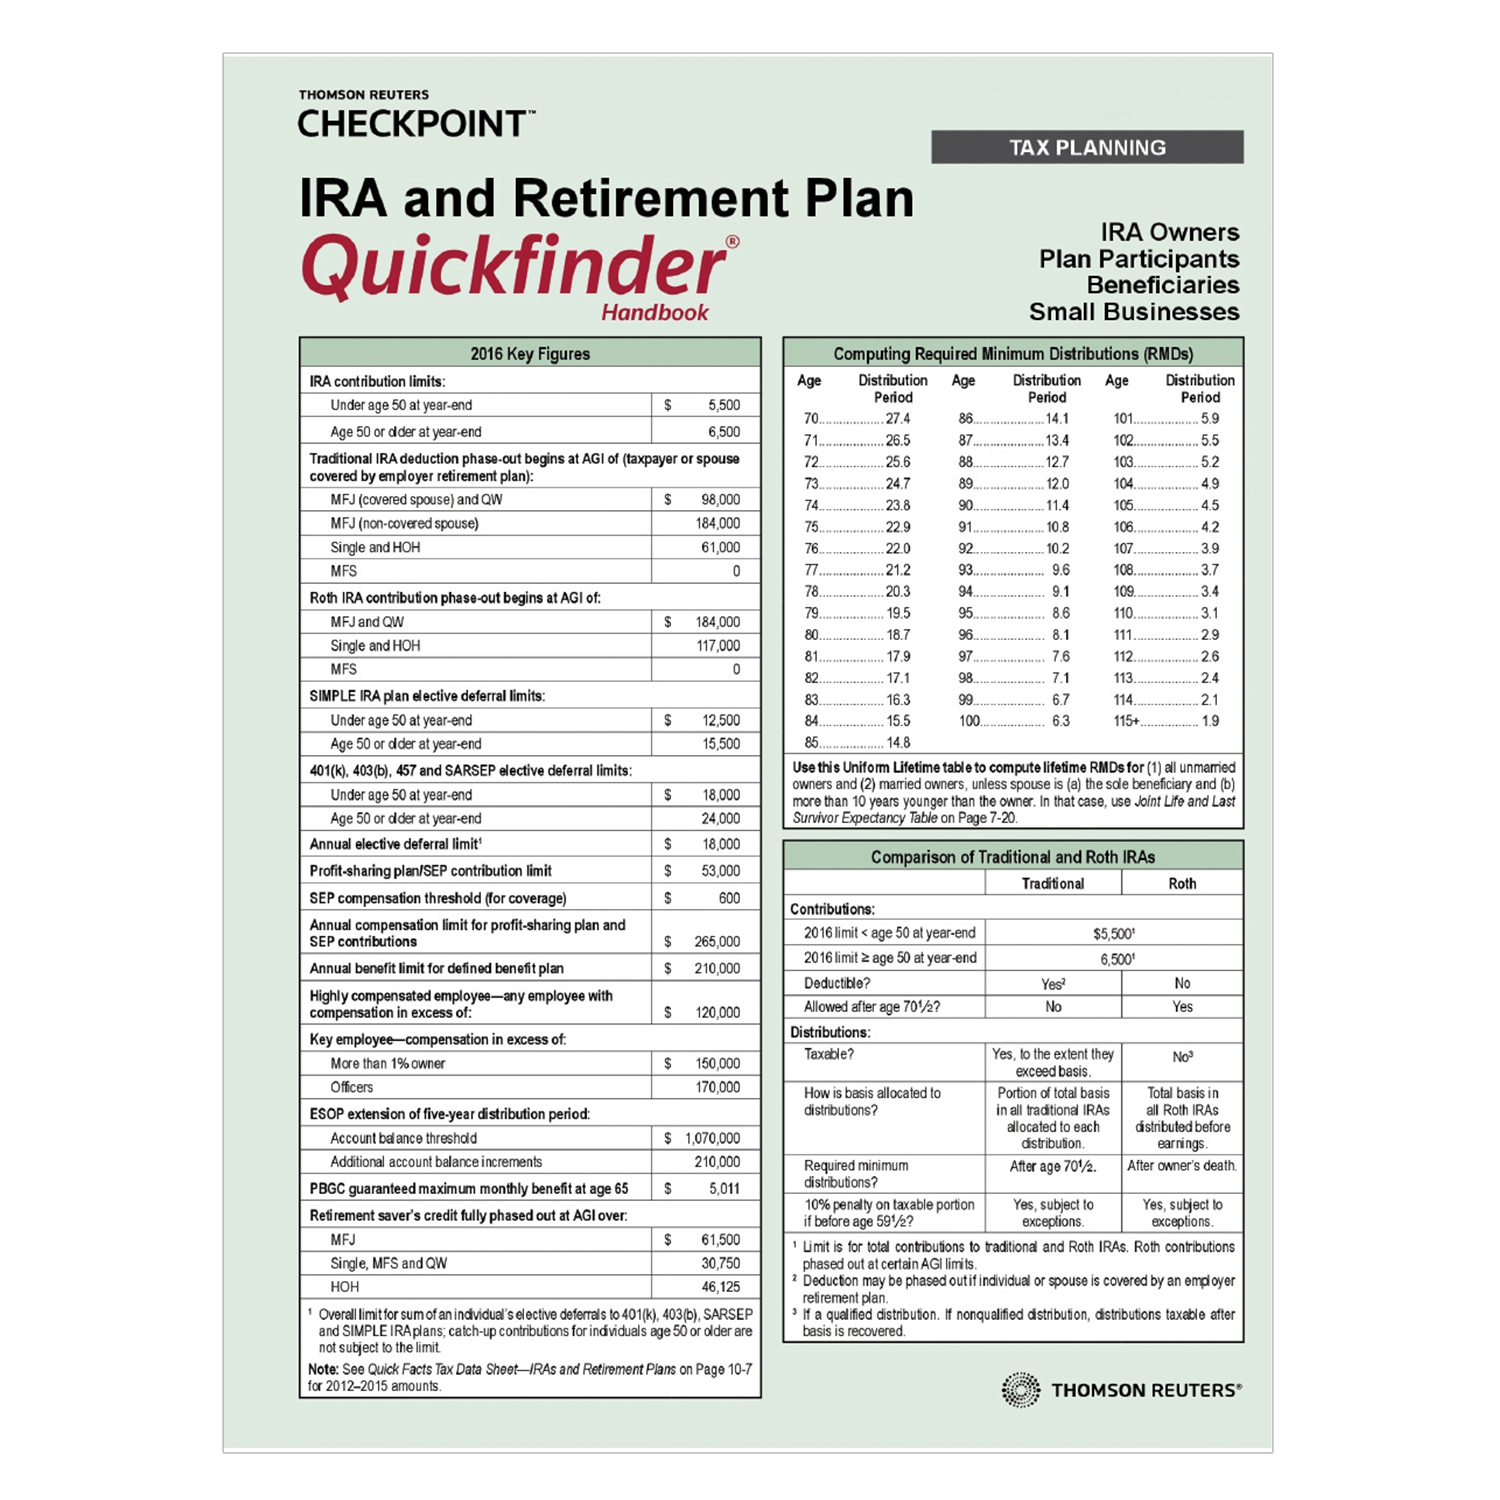 IRA and Retirement Plan Quickfinder Handbook (2019) – #3918